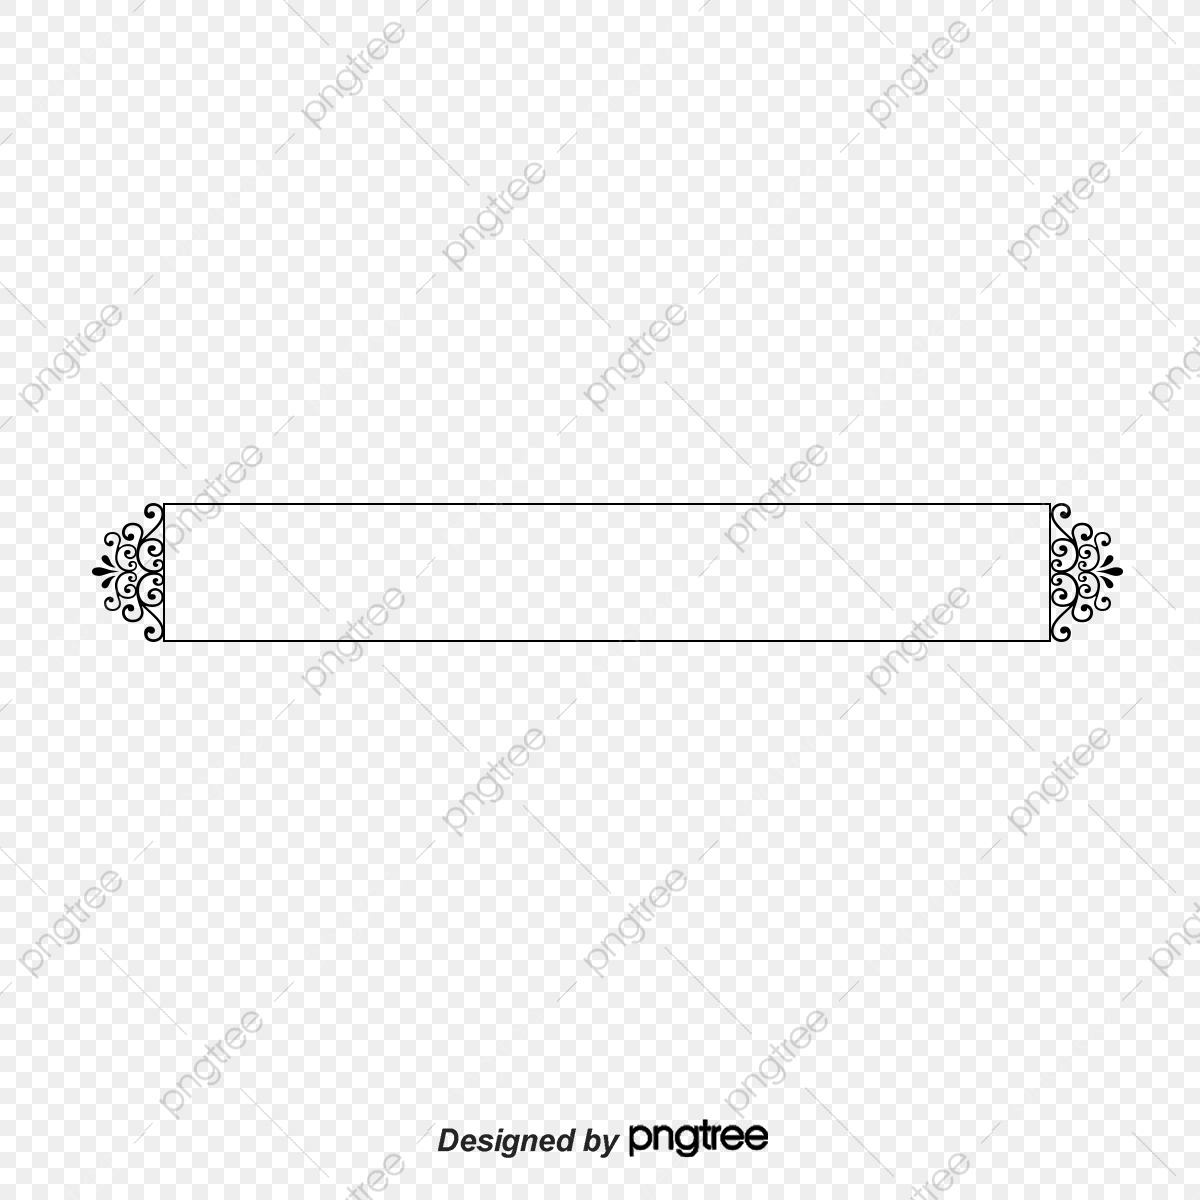 European Dividing Line Dividing Line Euporean Pattern Beautifully European Pattern Png Transparent Clipart Image And Psd File For Free Download